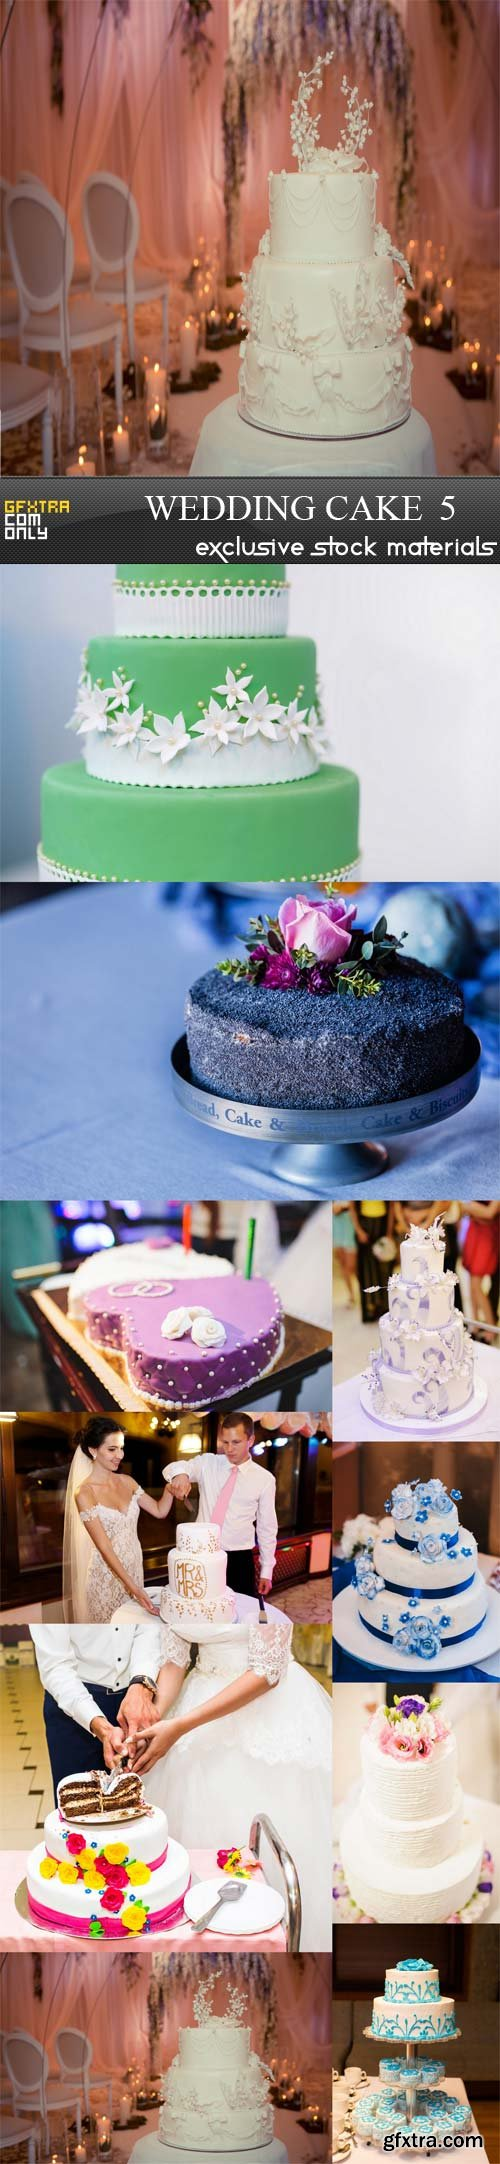 Wedding cake 5,10 UHQ JPEG